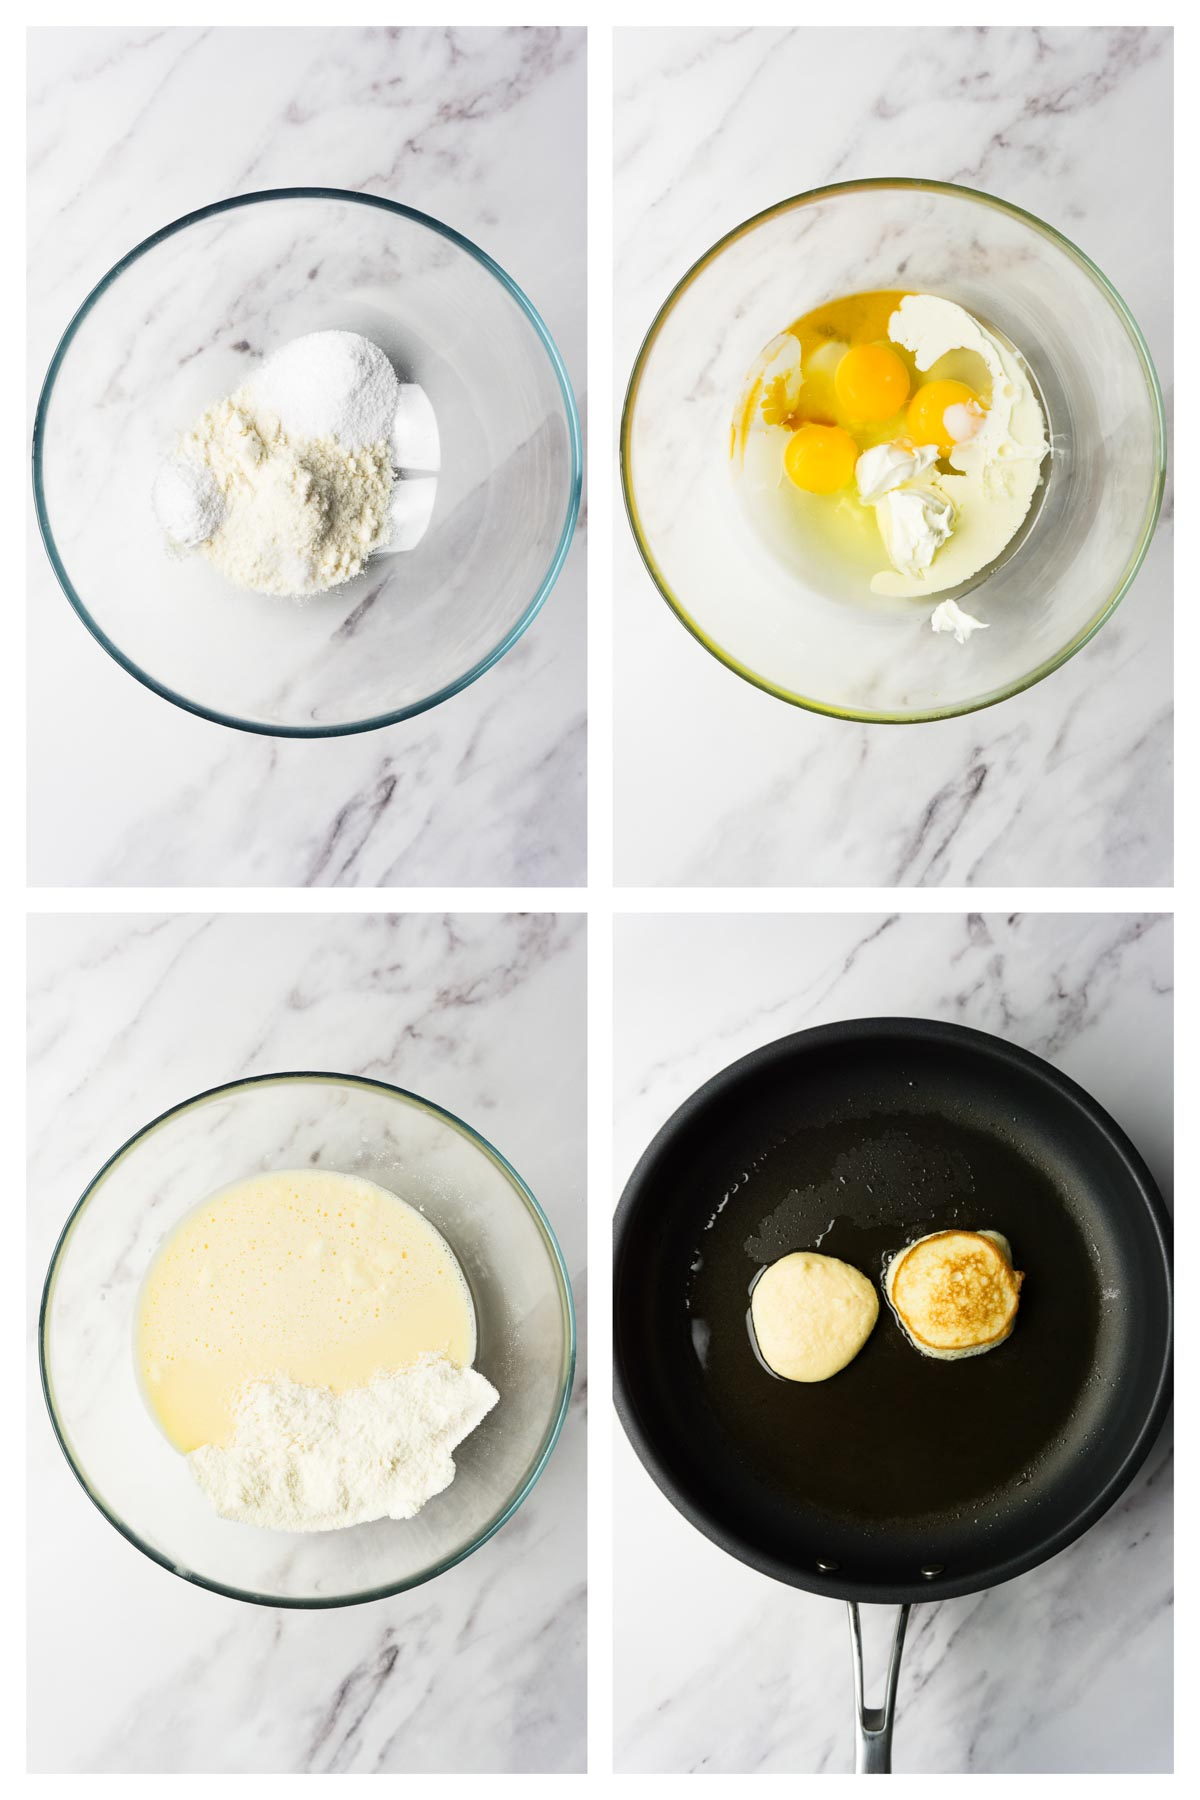 4 images collage picture showing how to make coconut flour pancakes.